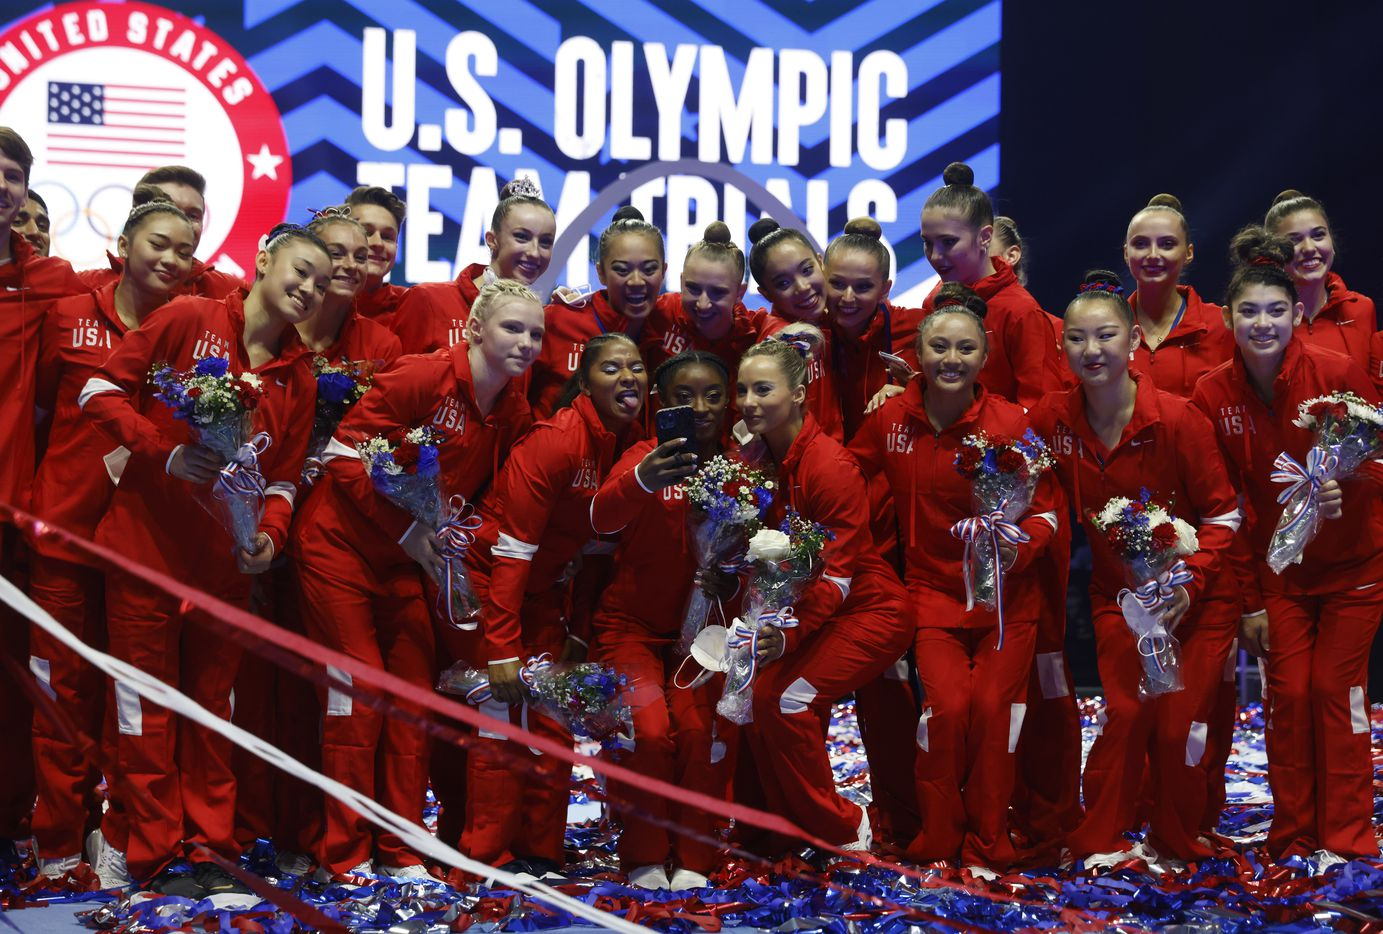 Simone Biles takes a selfie with teammates after the announcement of the U.S. Women's Olympic gymnastics team during day 2 of the women's 2021 U.S. Olympic Trials at The Dome at America's Center on Sunday, June 27, 2021 in St Louis, Missouri.(Vernon Bryant/The Dallas Morning News)